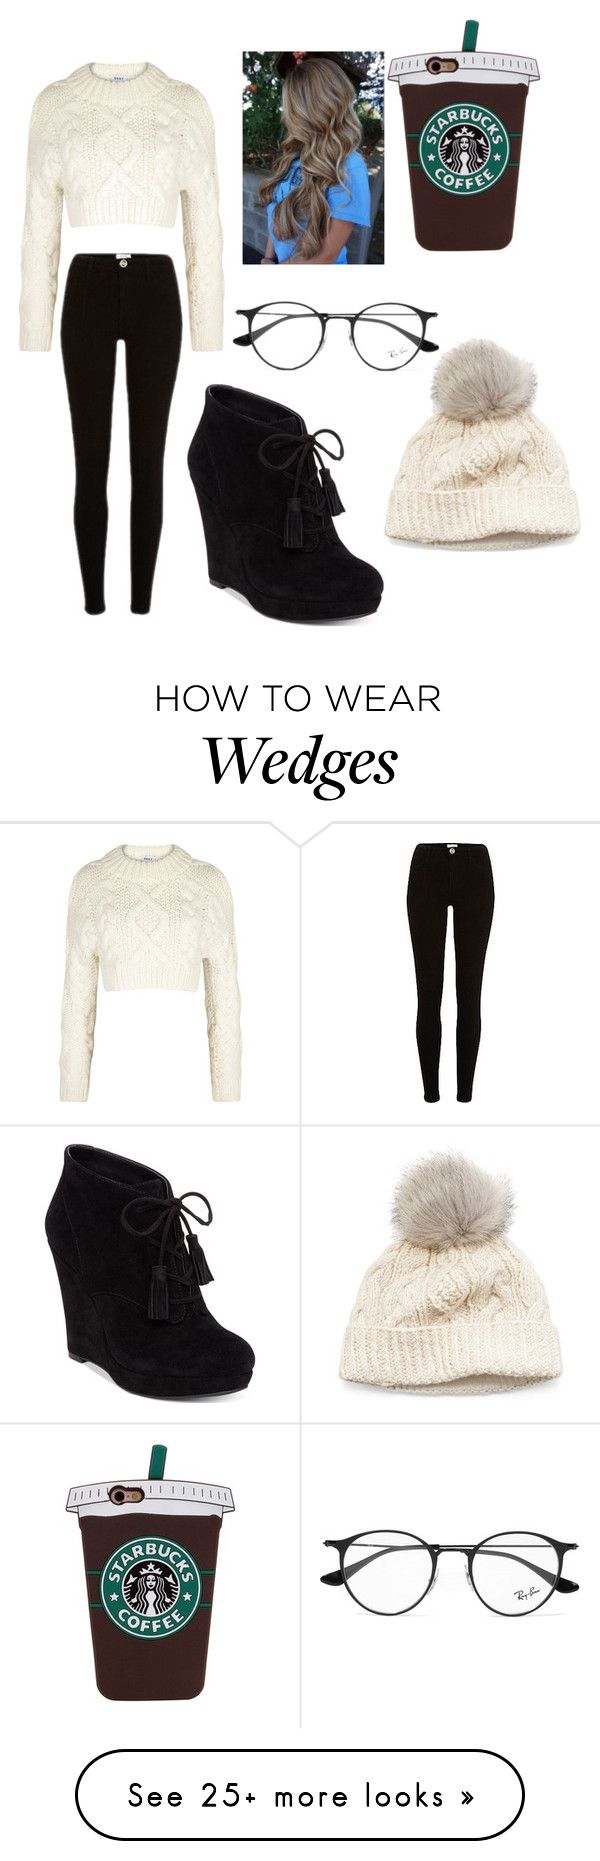 """""""Fall classic"""" by amayafrench on Polyvore featuring DKNY, Jessica Simpson, SIJJL and Ray-Ban"""